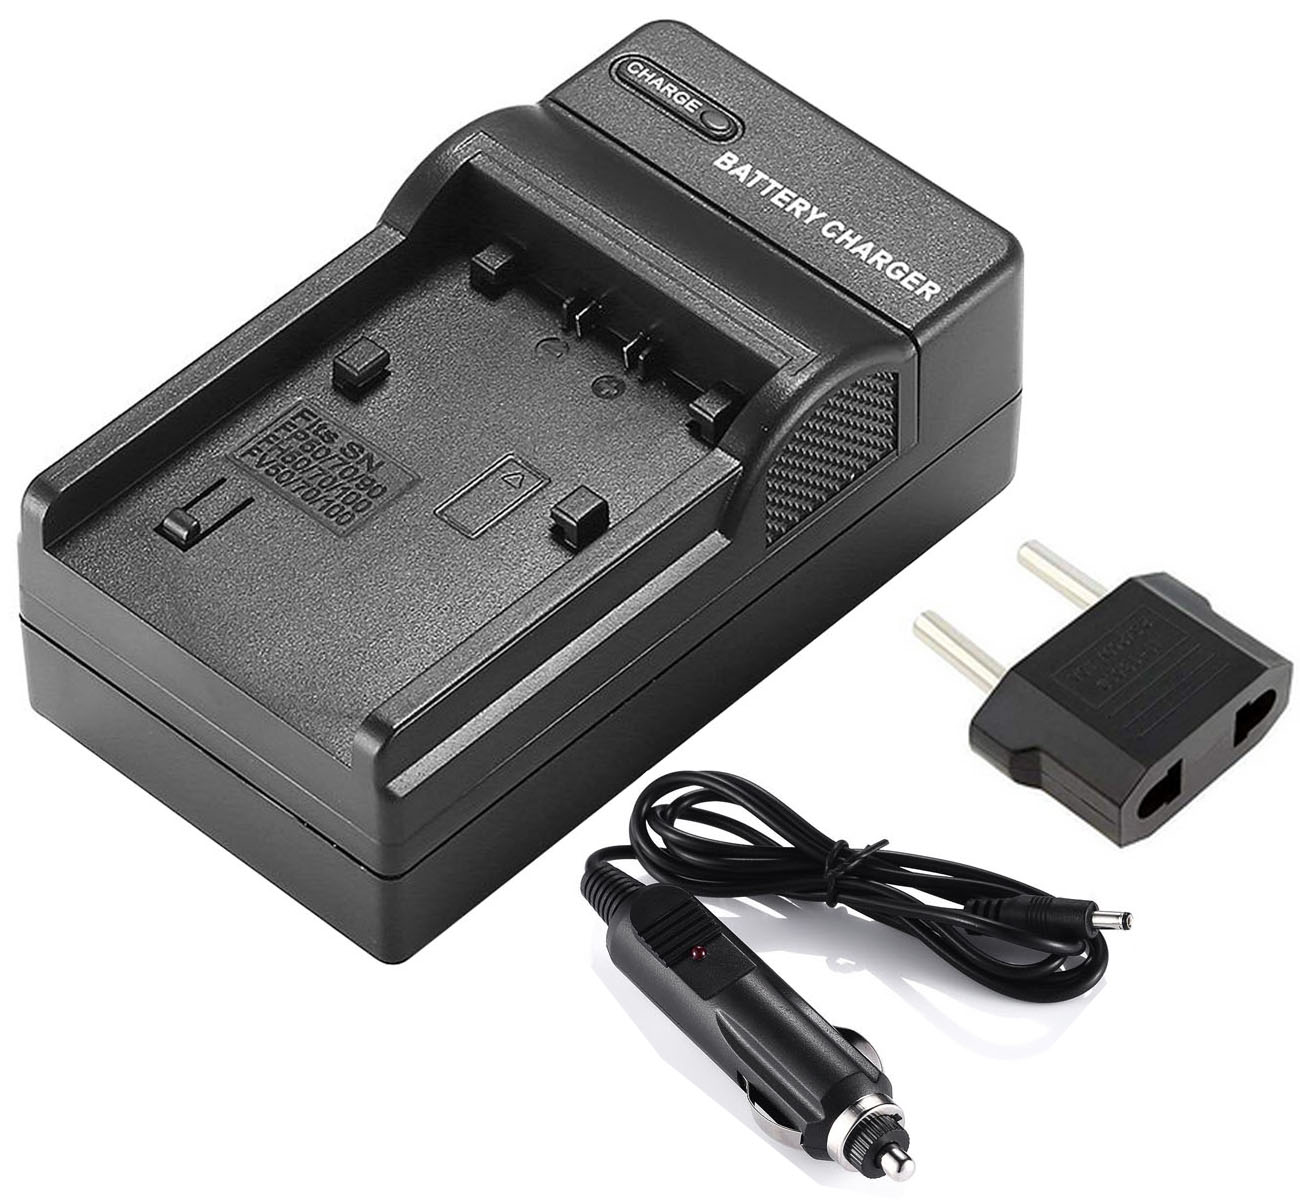 LCD USB Travel Battery Charger for Sony DCR-HC45E DCR-HC48E Handycam Camcorder DCR-HC47E DCR-HC46E